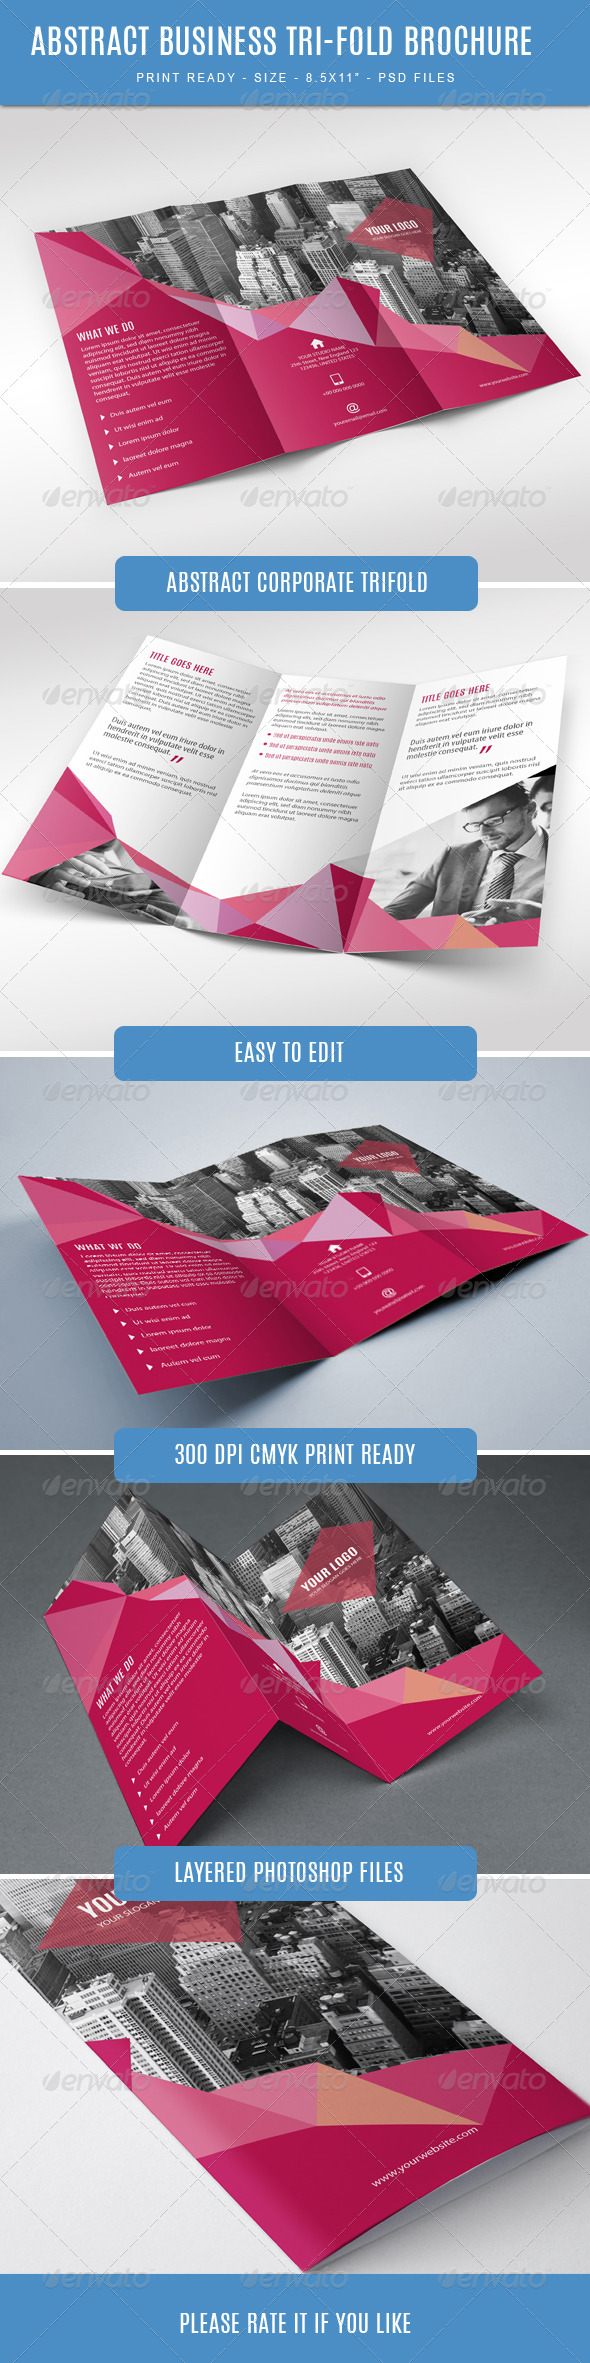 GraphicRiver Abstract Trifold Brochure for Business 7662582